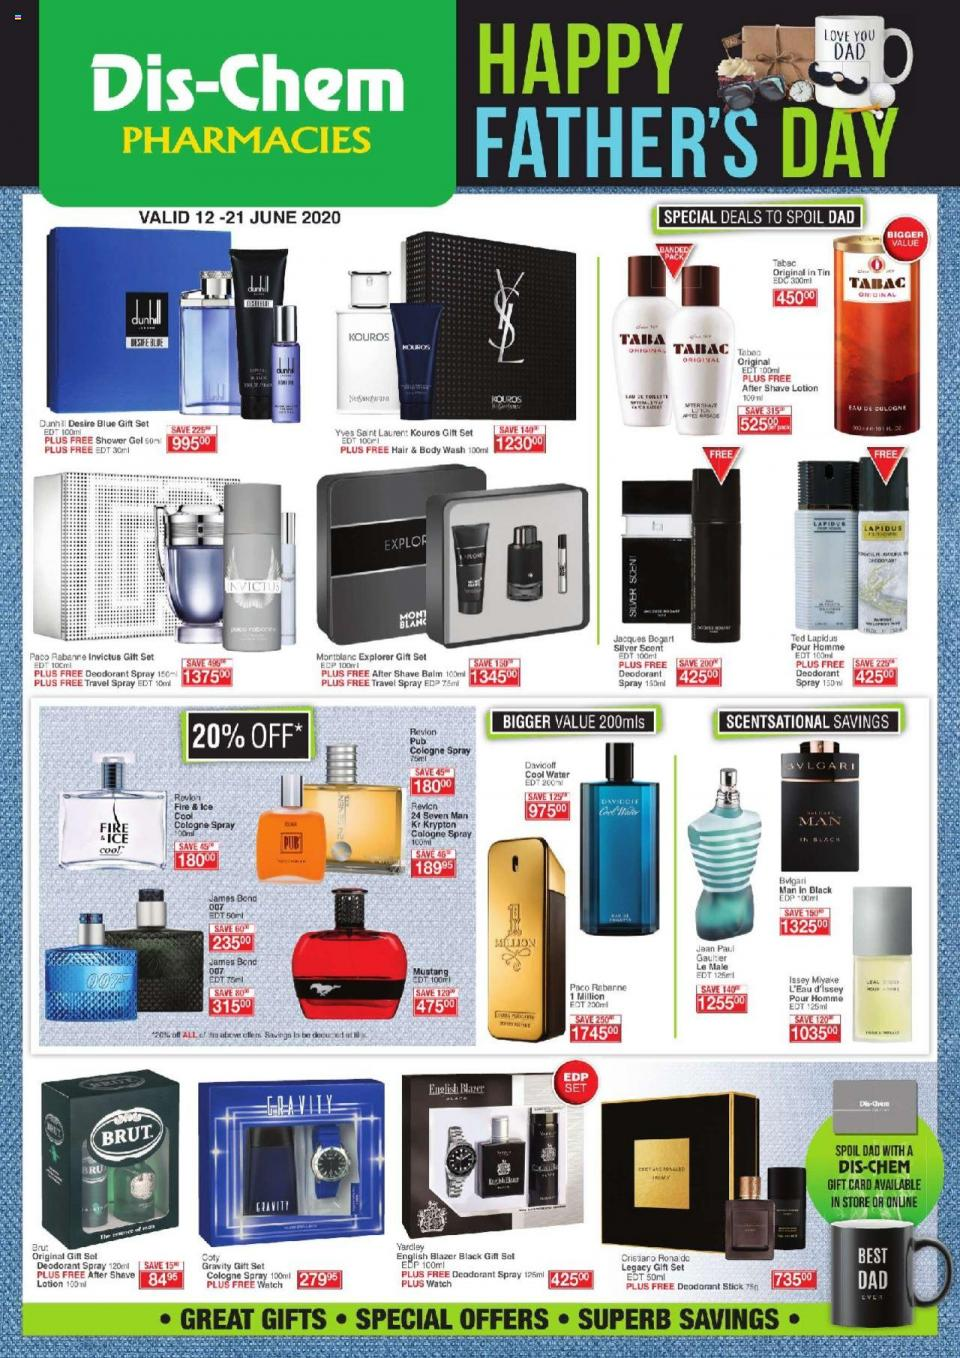 dischem specials fathers day 12 june 2020